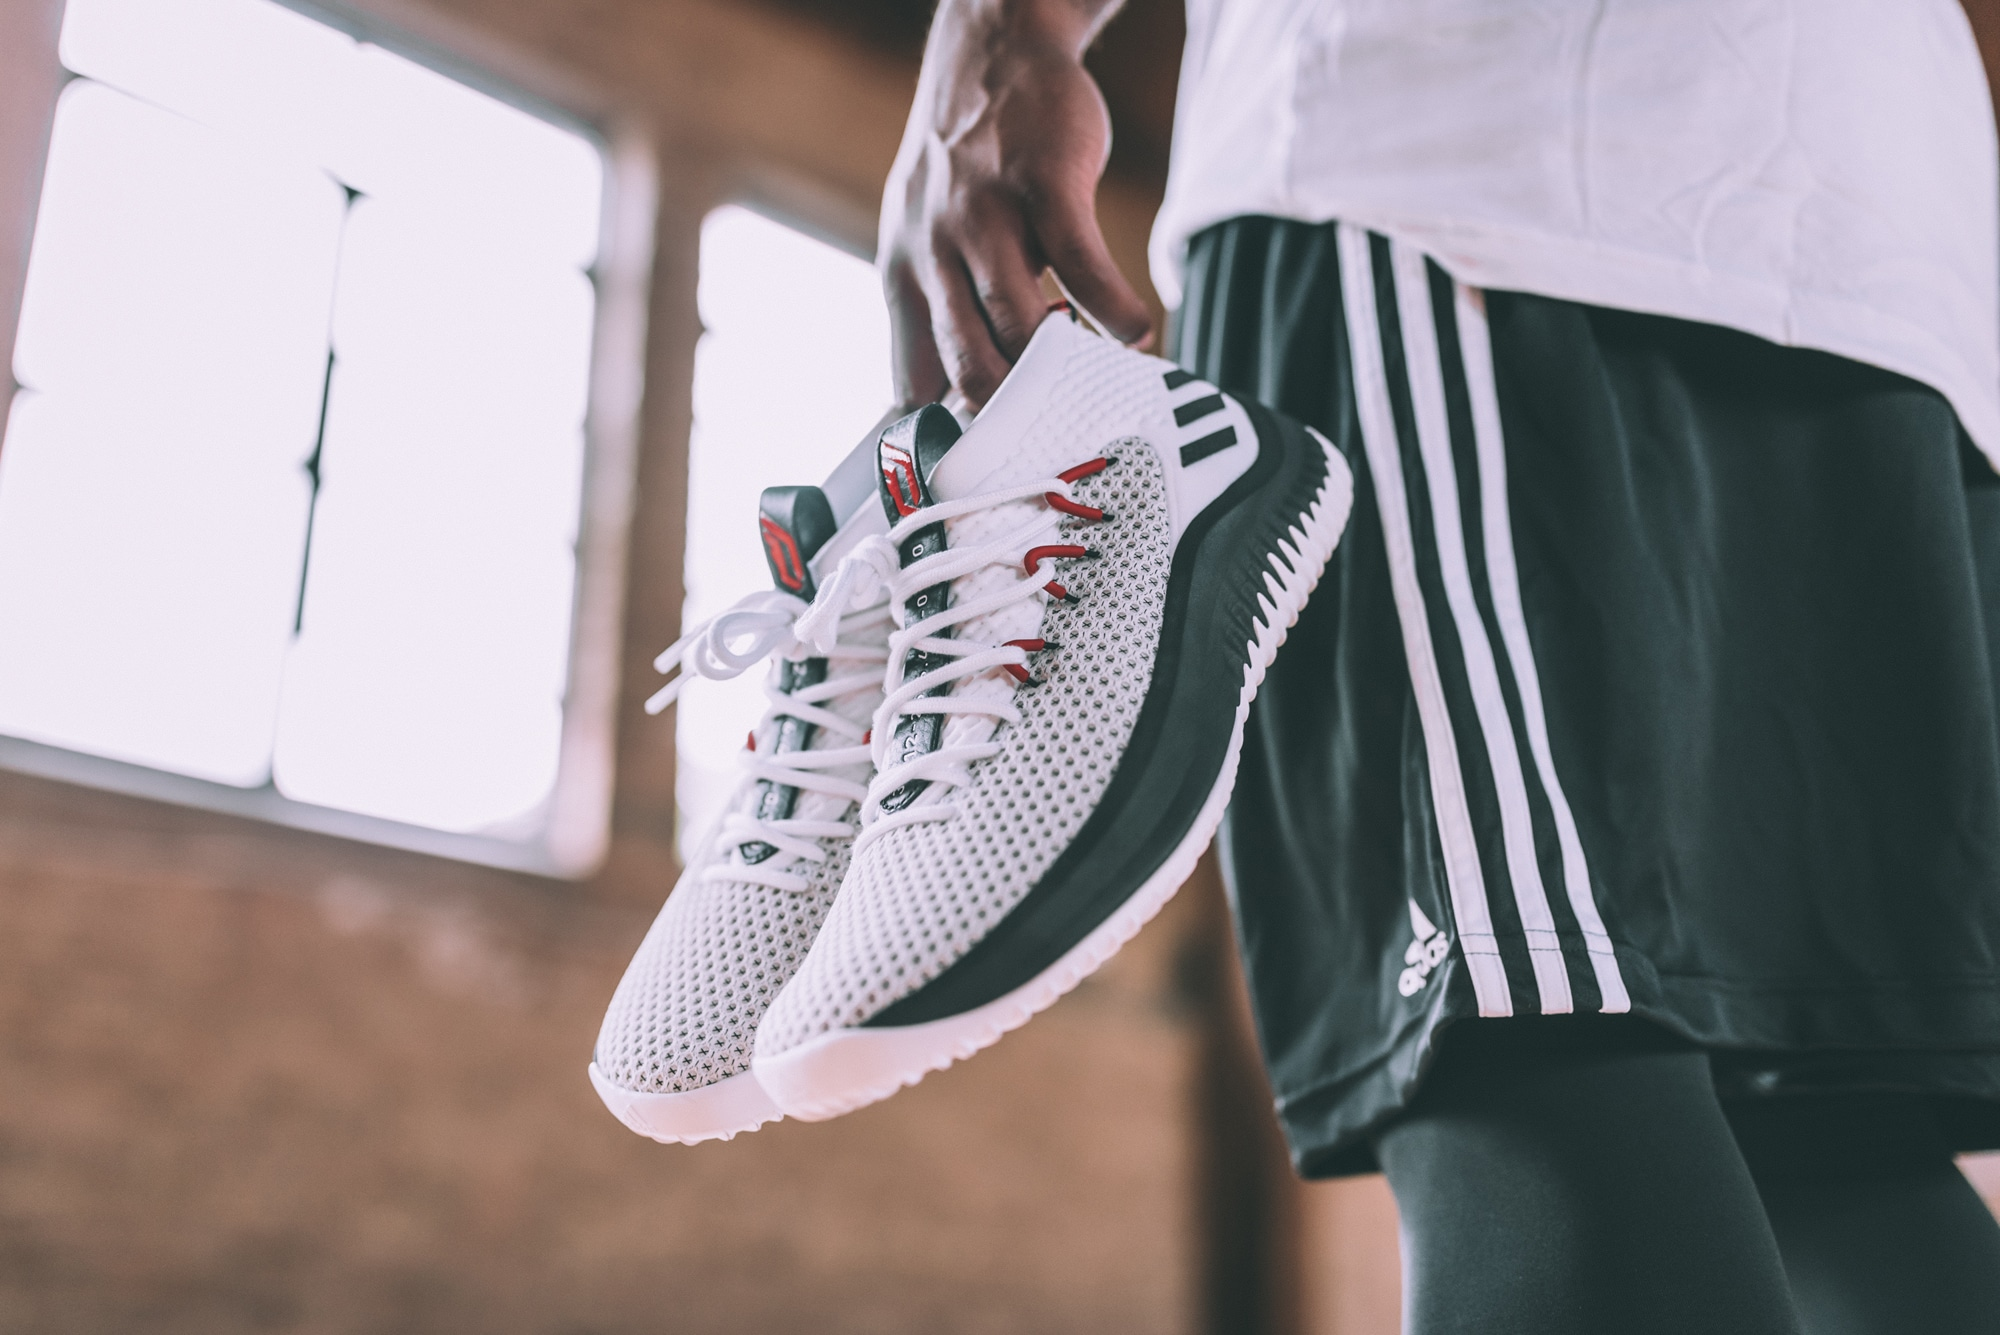 outlet store cd51e 17b1c But luckily for you and your feet, that has changed, as adidas is releasing  Lillard s newest signature sneaker, the Dame 4, online on Oct. 4 and in  stores ...